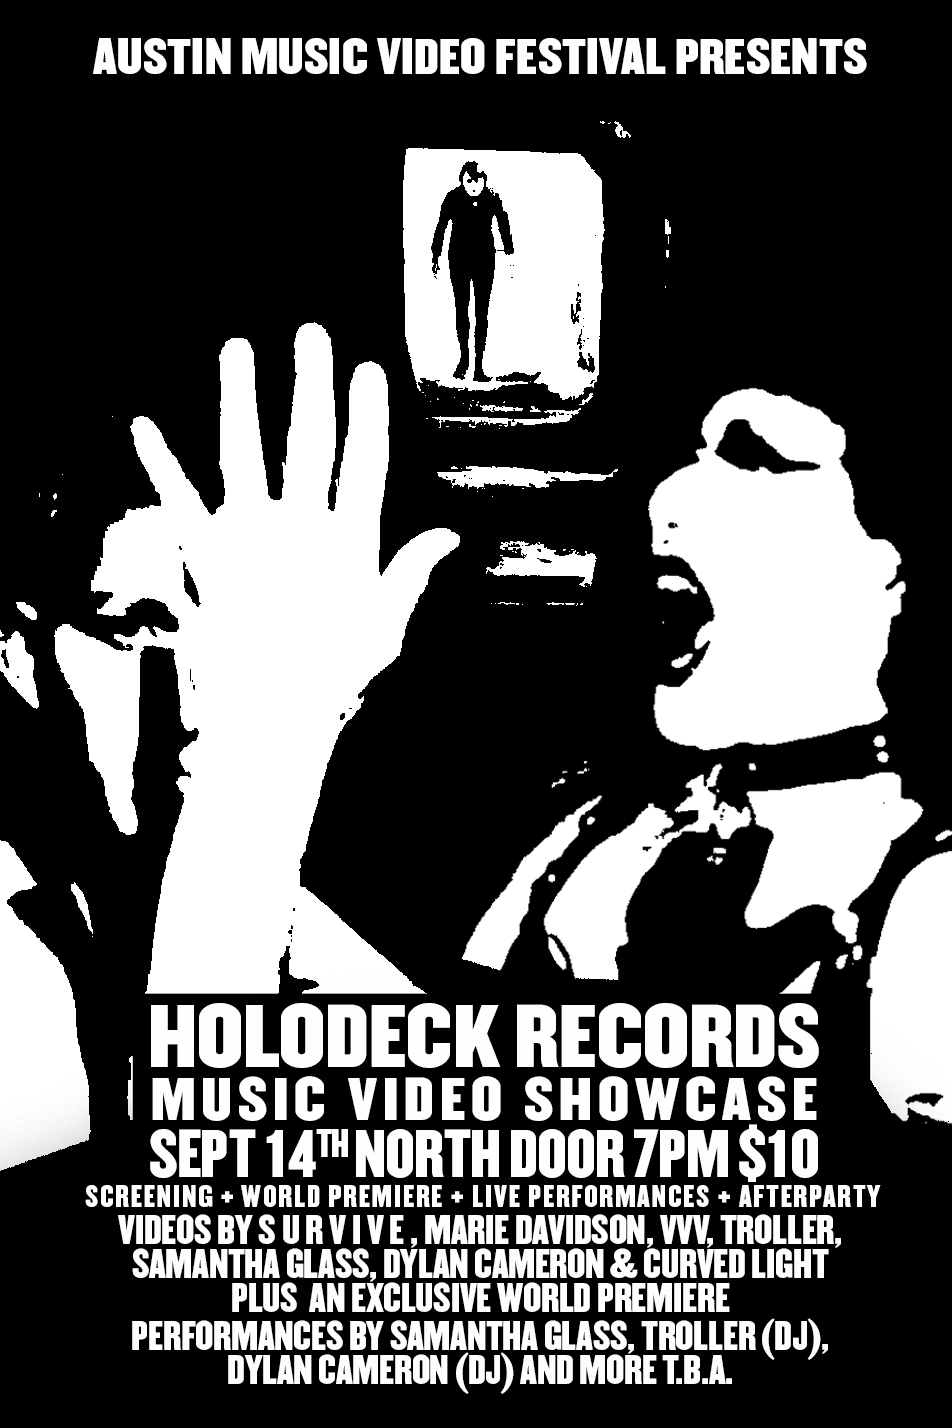 HOLODECK VIDEO SHOWCASE + AFTERPARTY